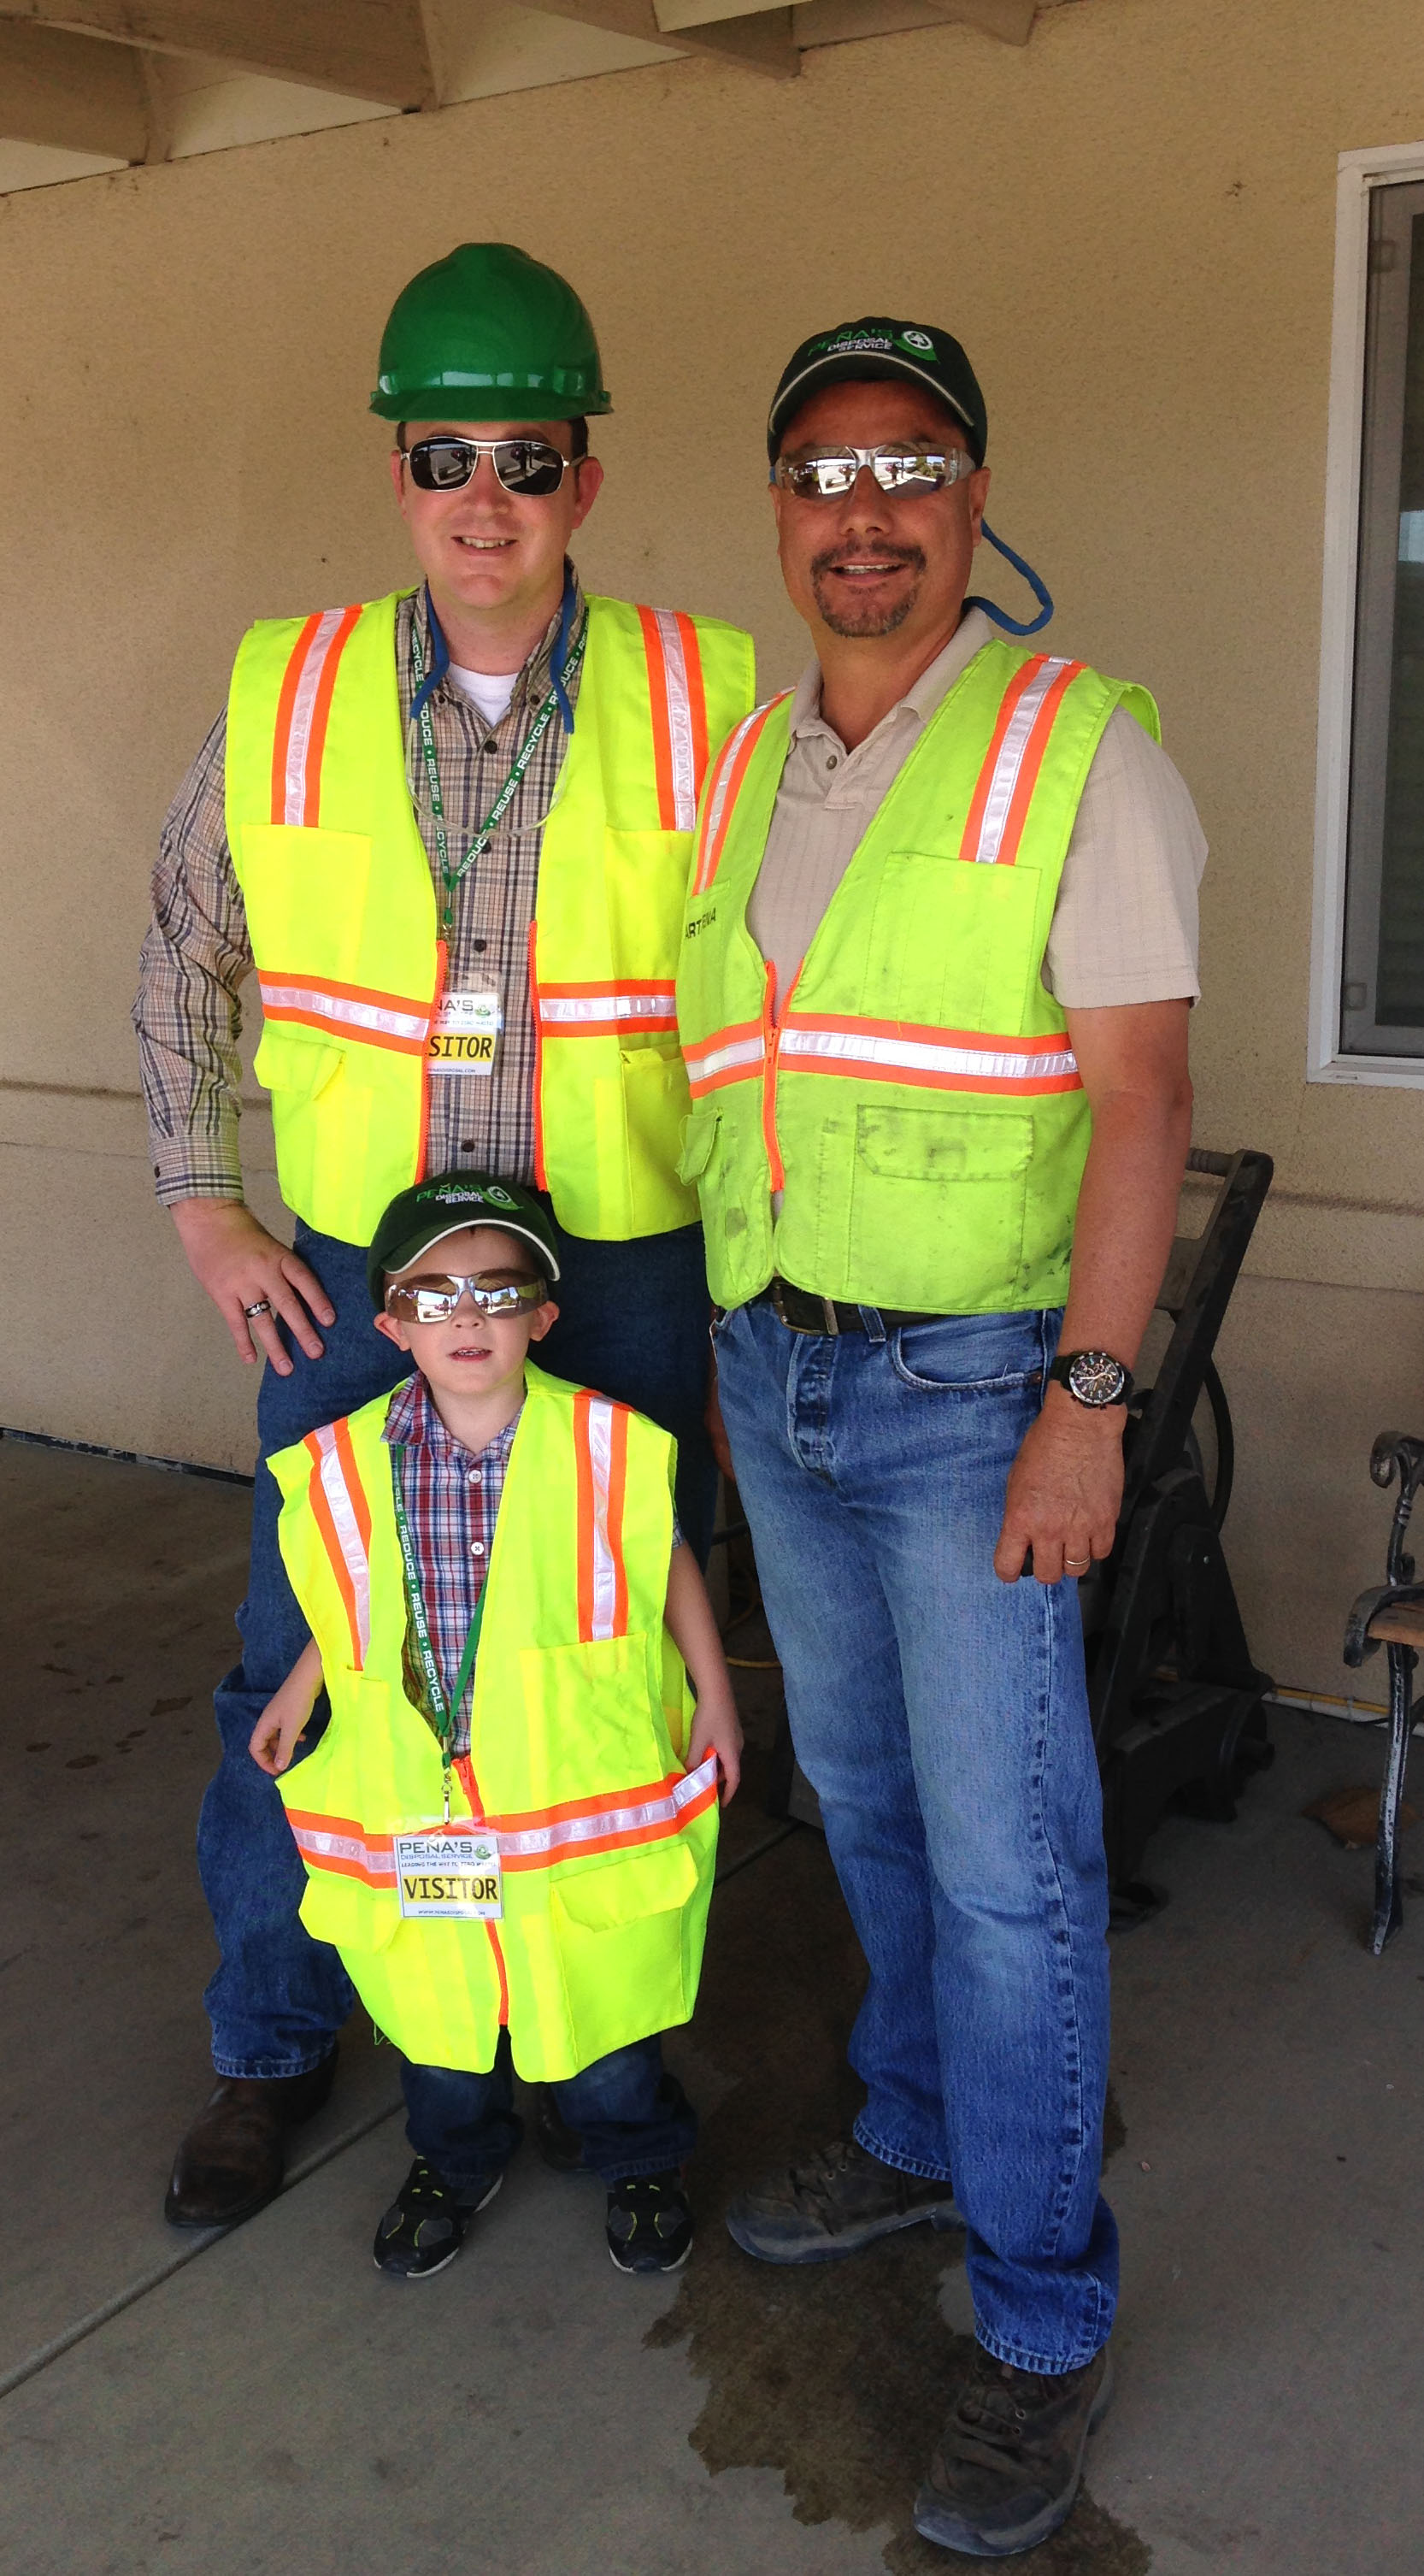 Assemblyman Devon Mathis and his son visit Peña's Disposal